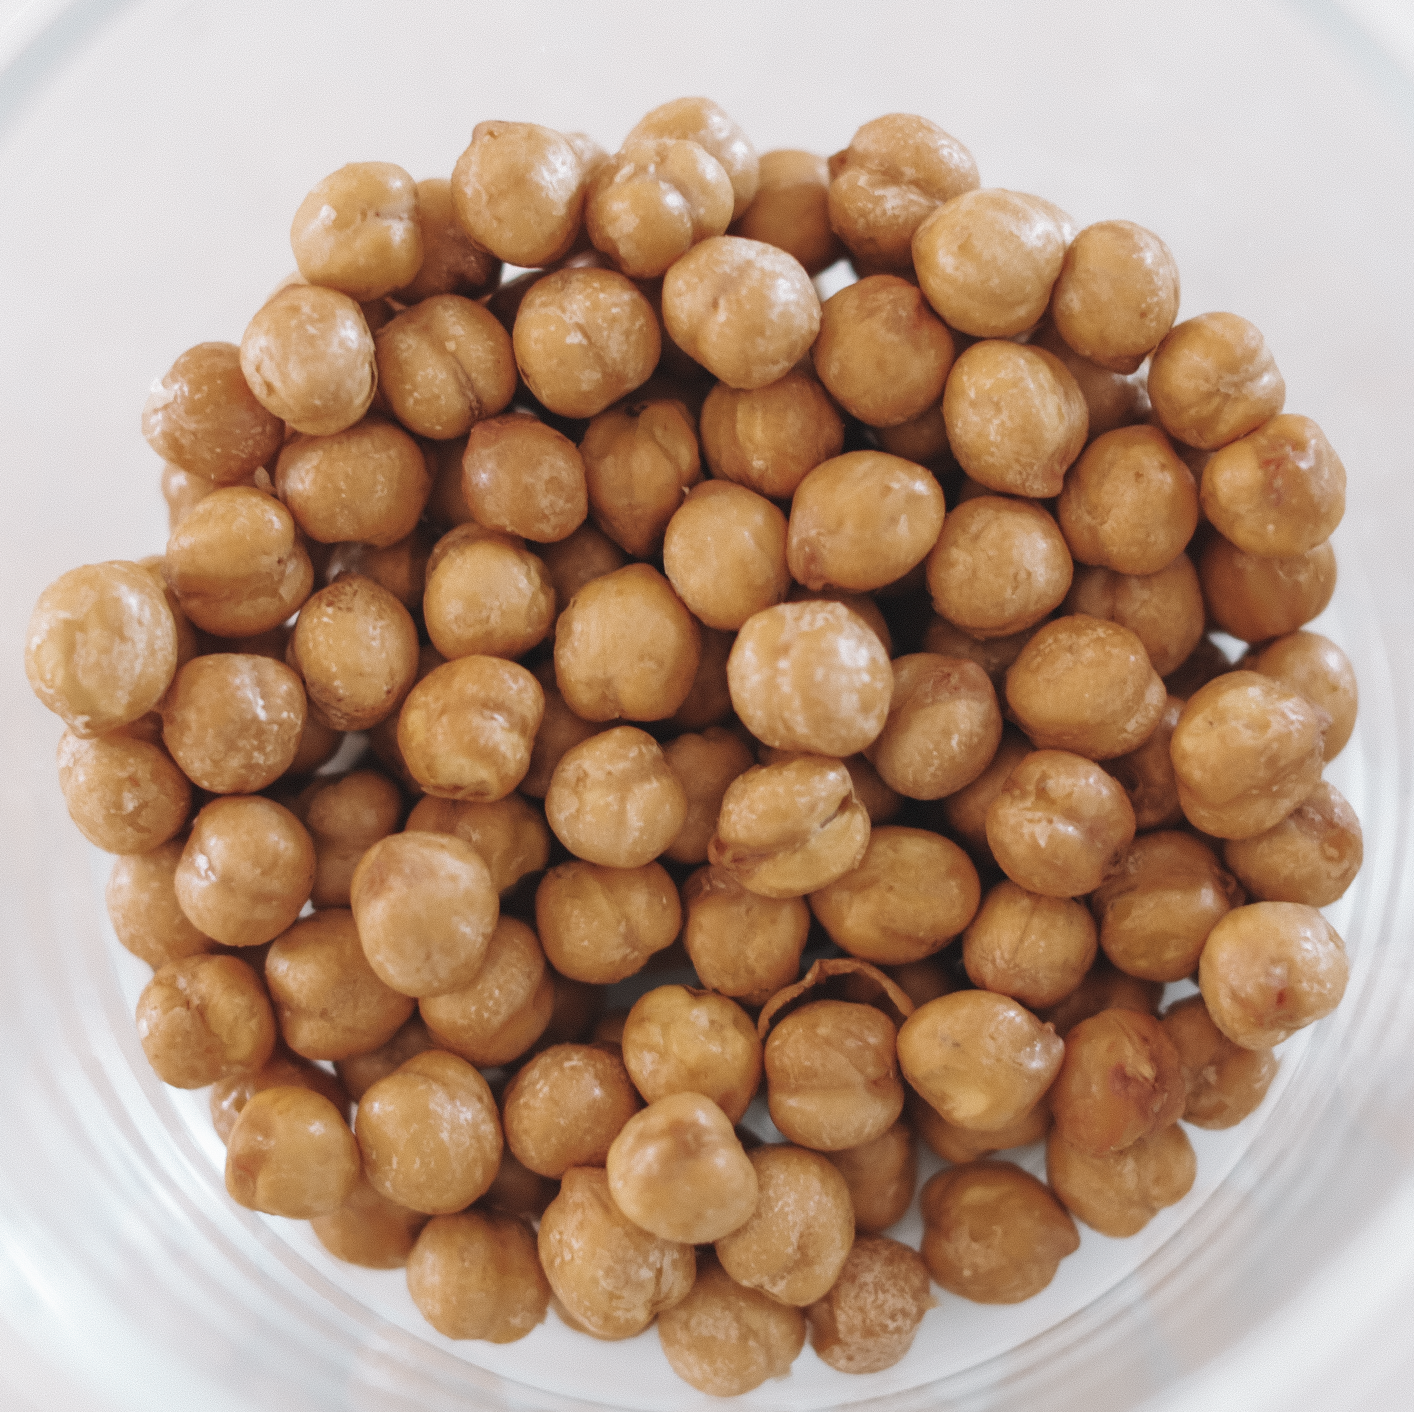 Baked Chickpeas - 226kcal12g P / 3g F / 27g C